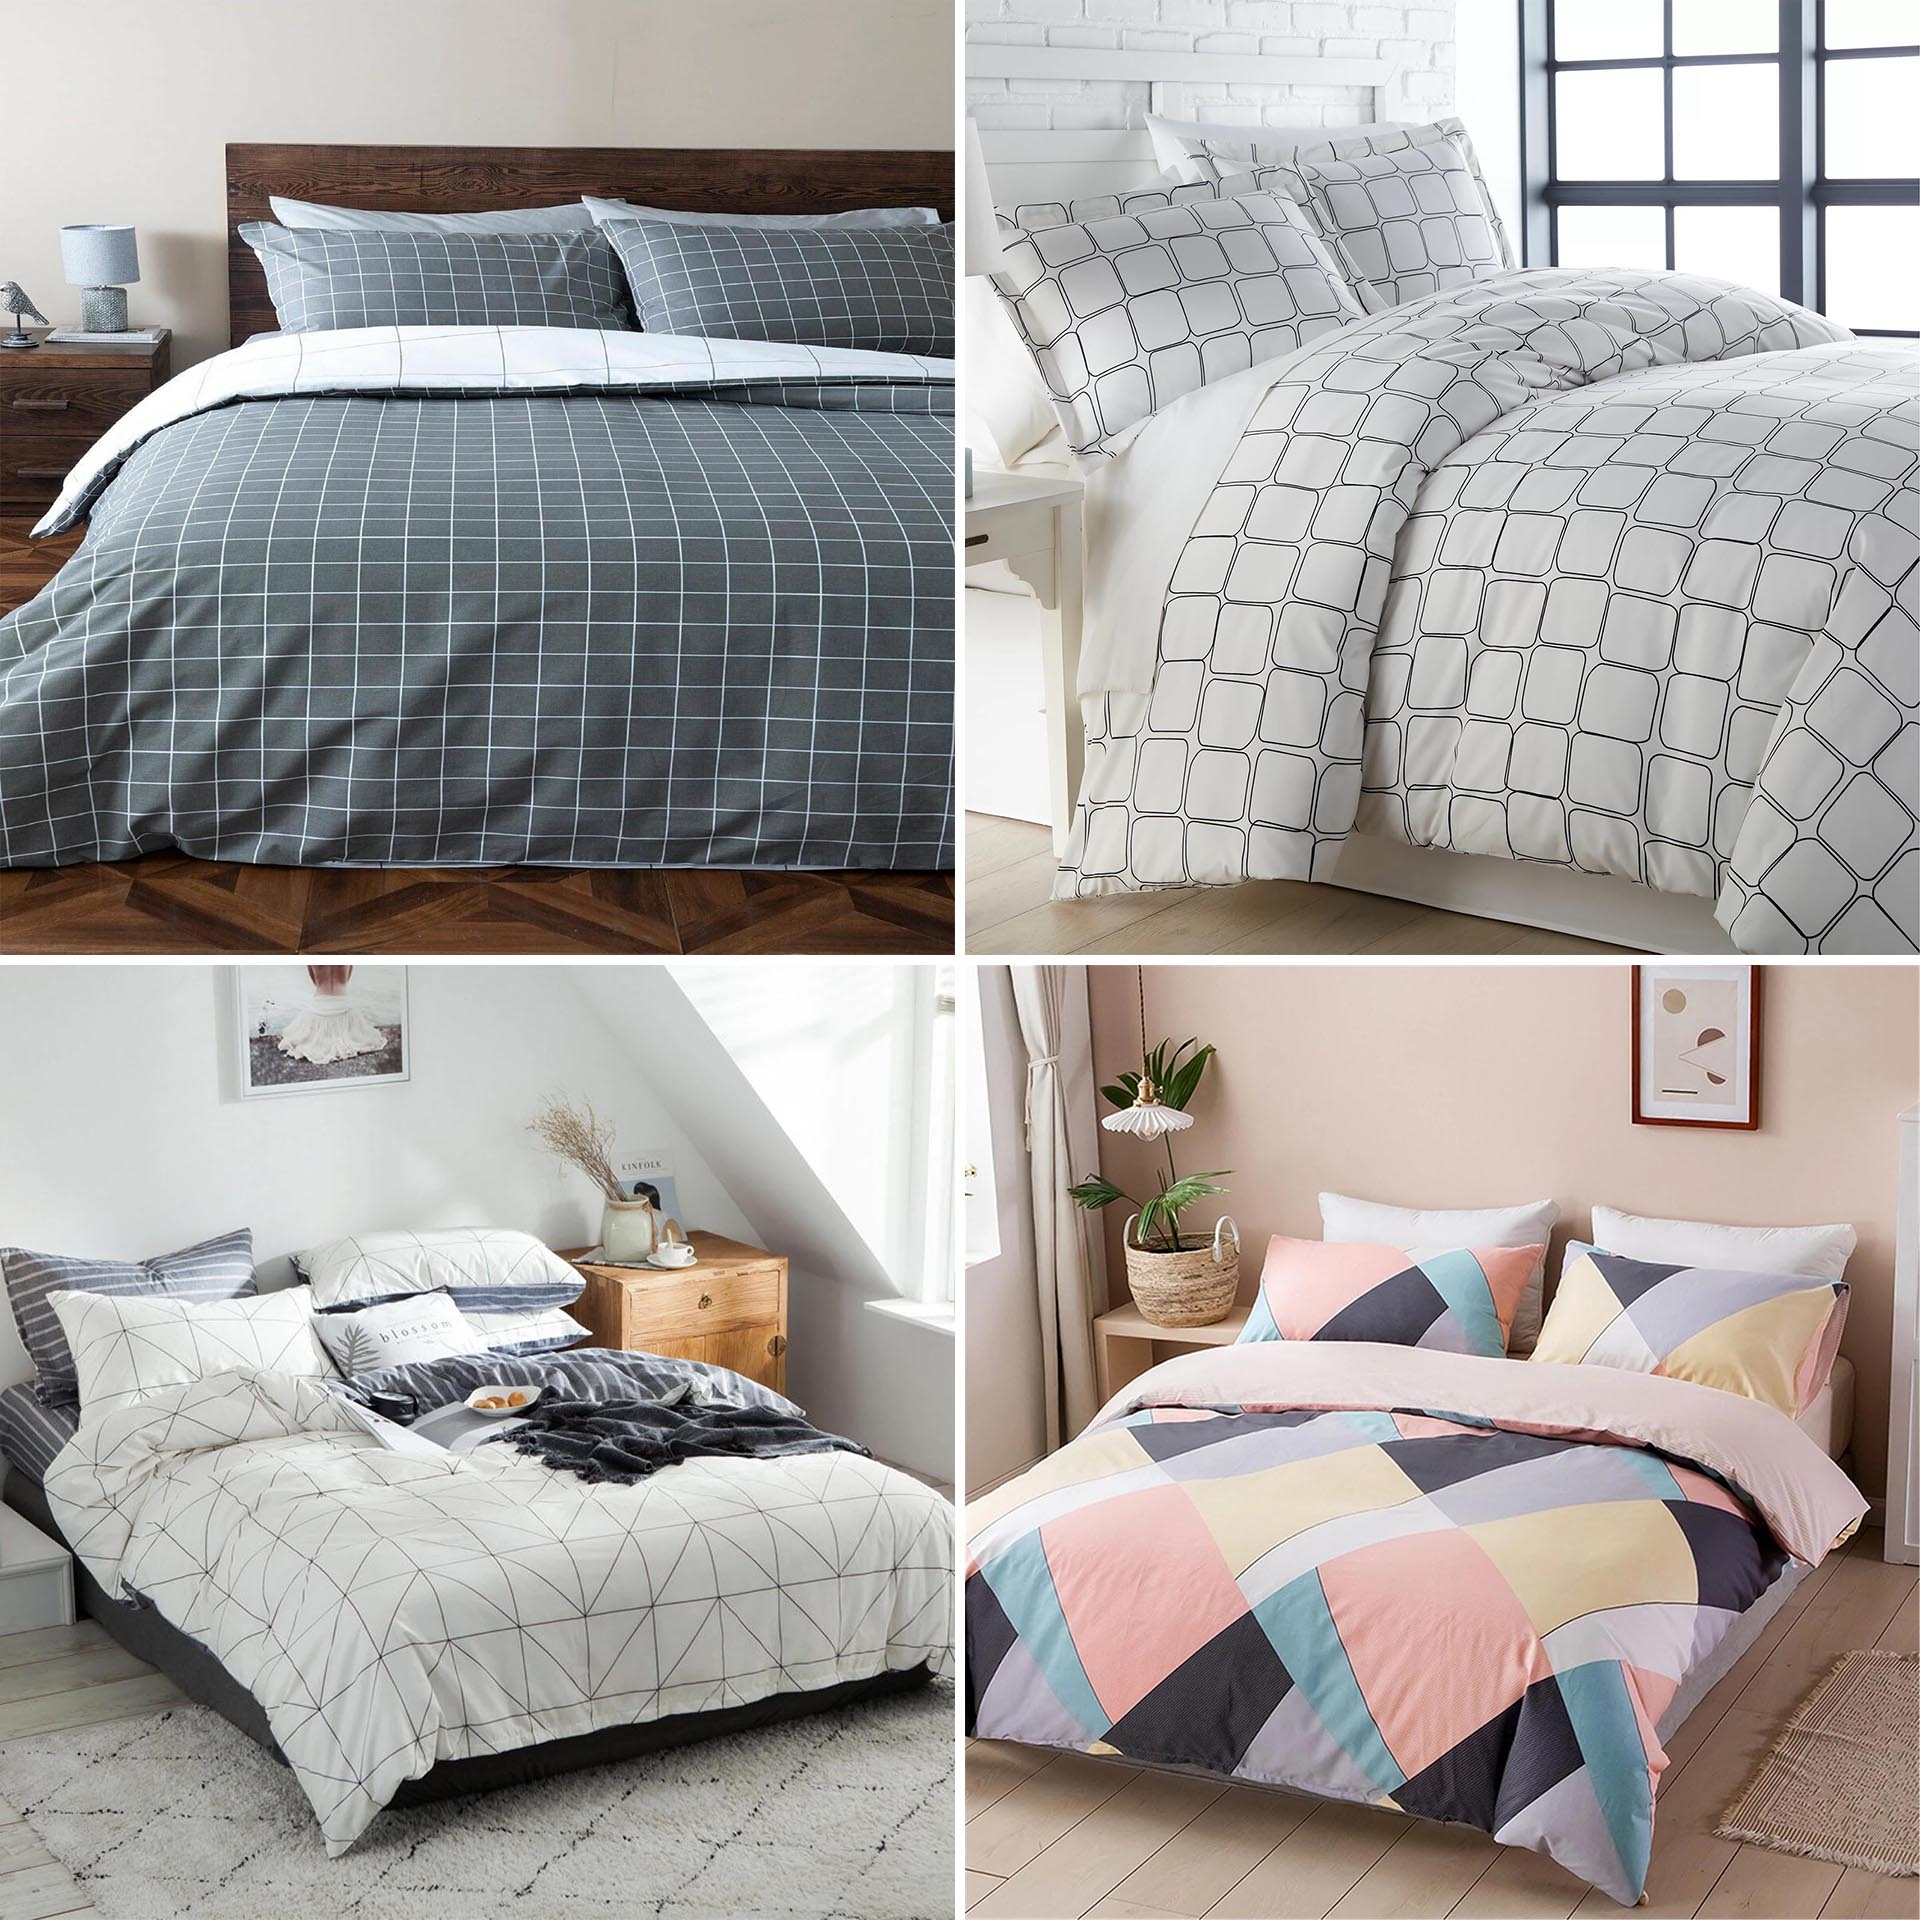 Modern geometric bedding is a great way to add interest and color to the any bedroom, without it being overpowering.